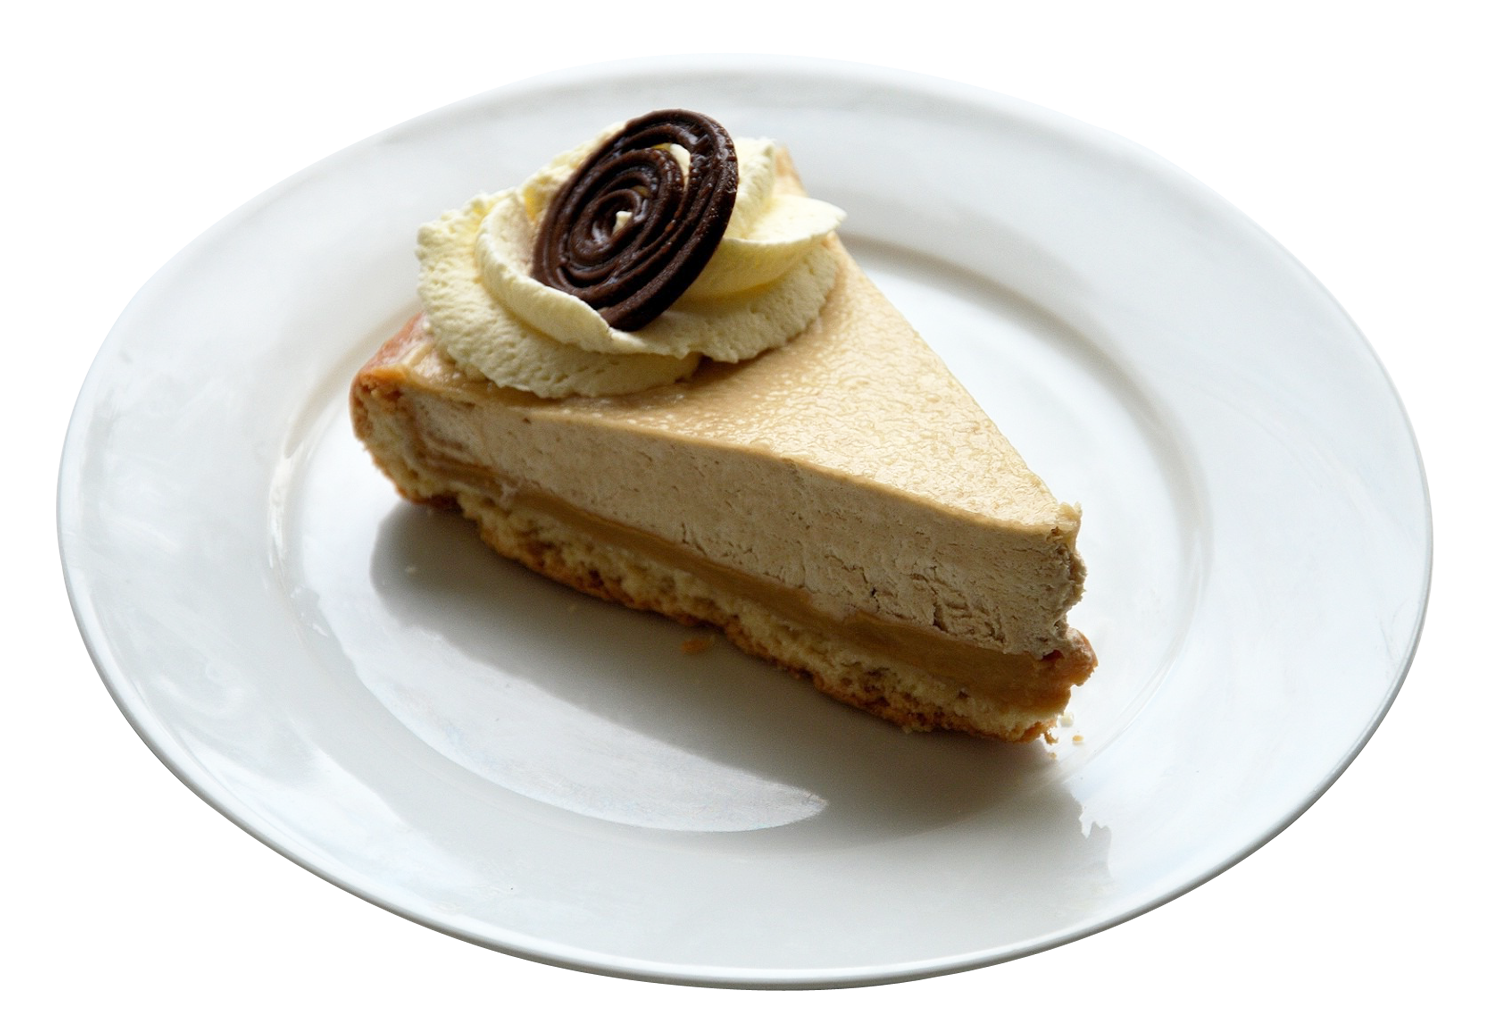 Slice of cake png. Images pngpix transparent image